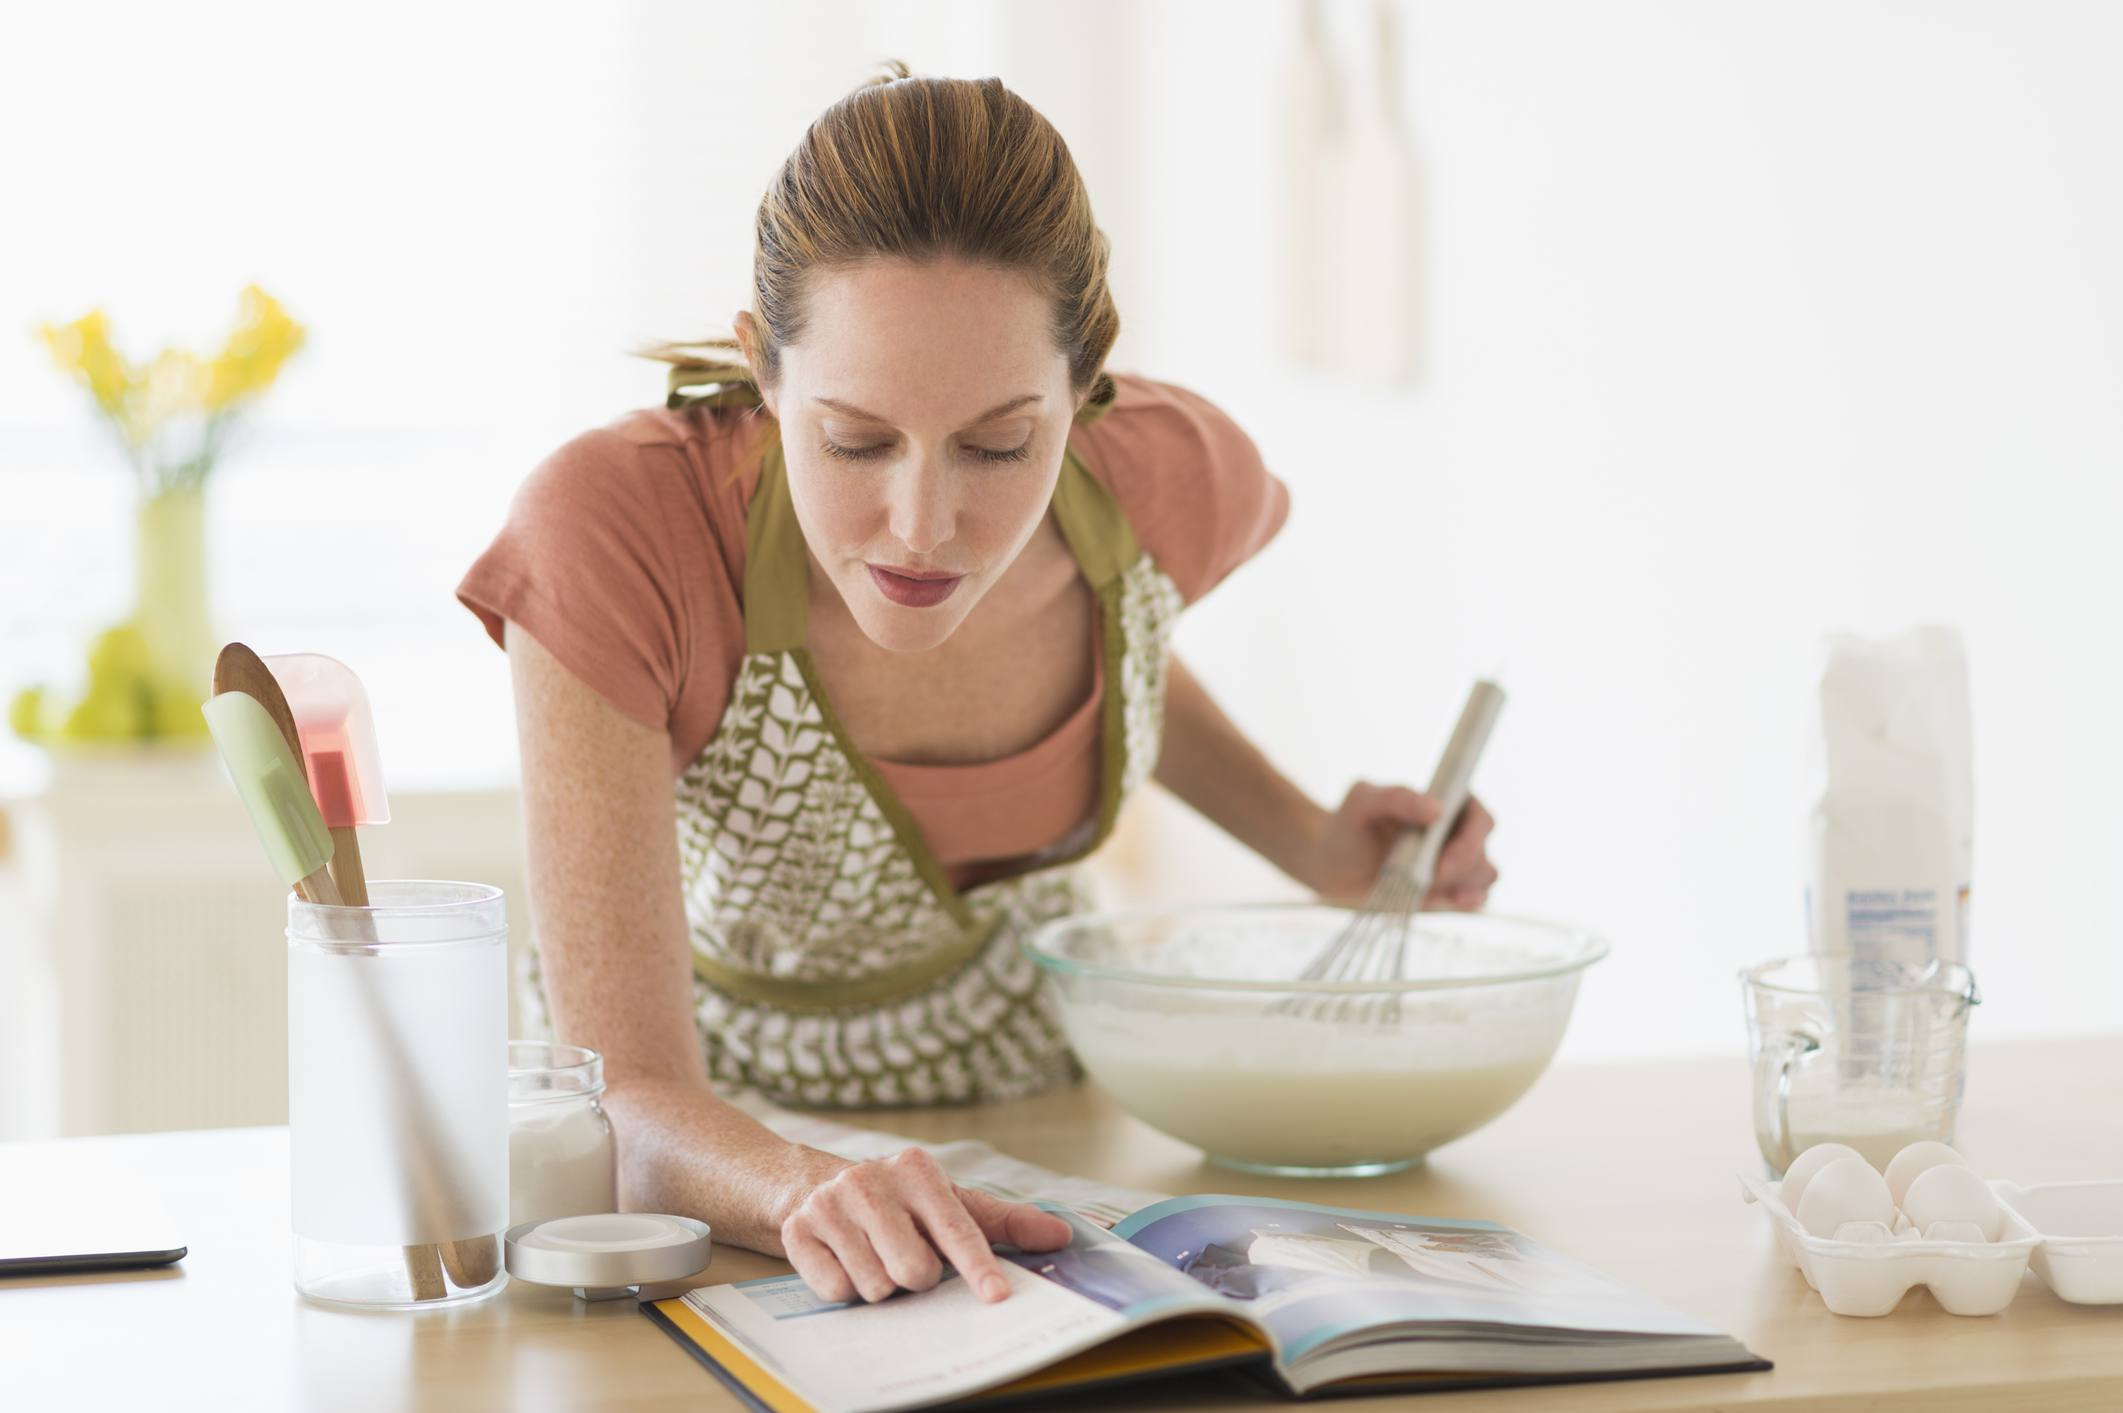 A woman baking in the kitchen